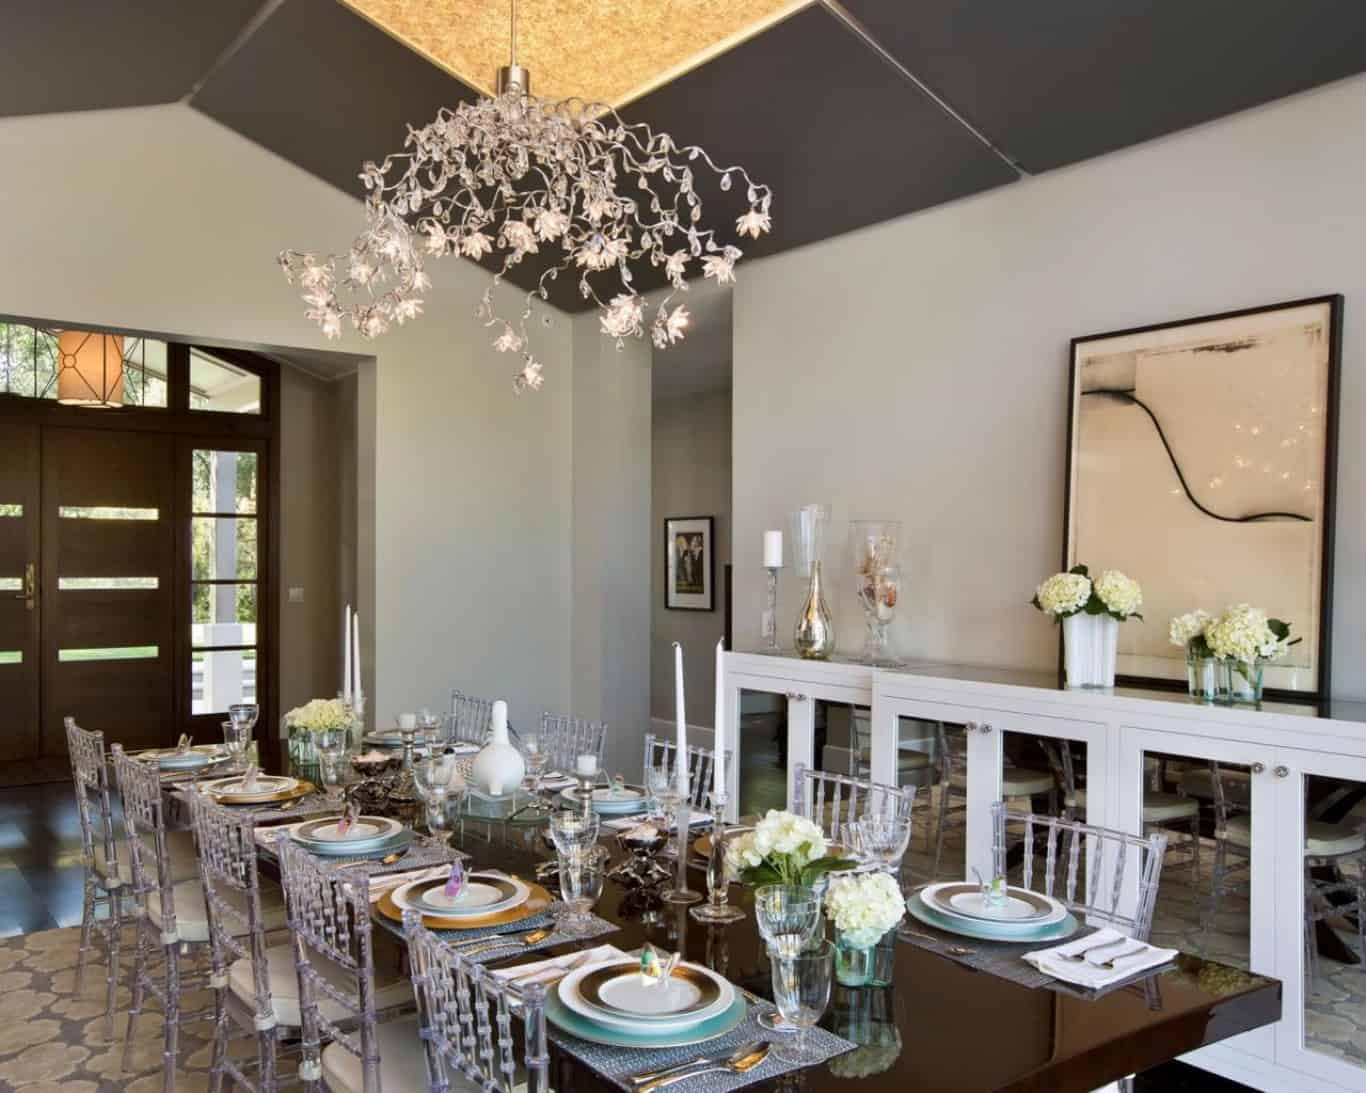 mini chandelier in dining room